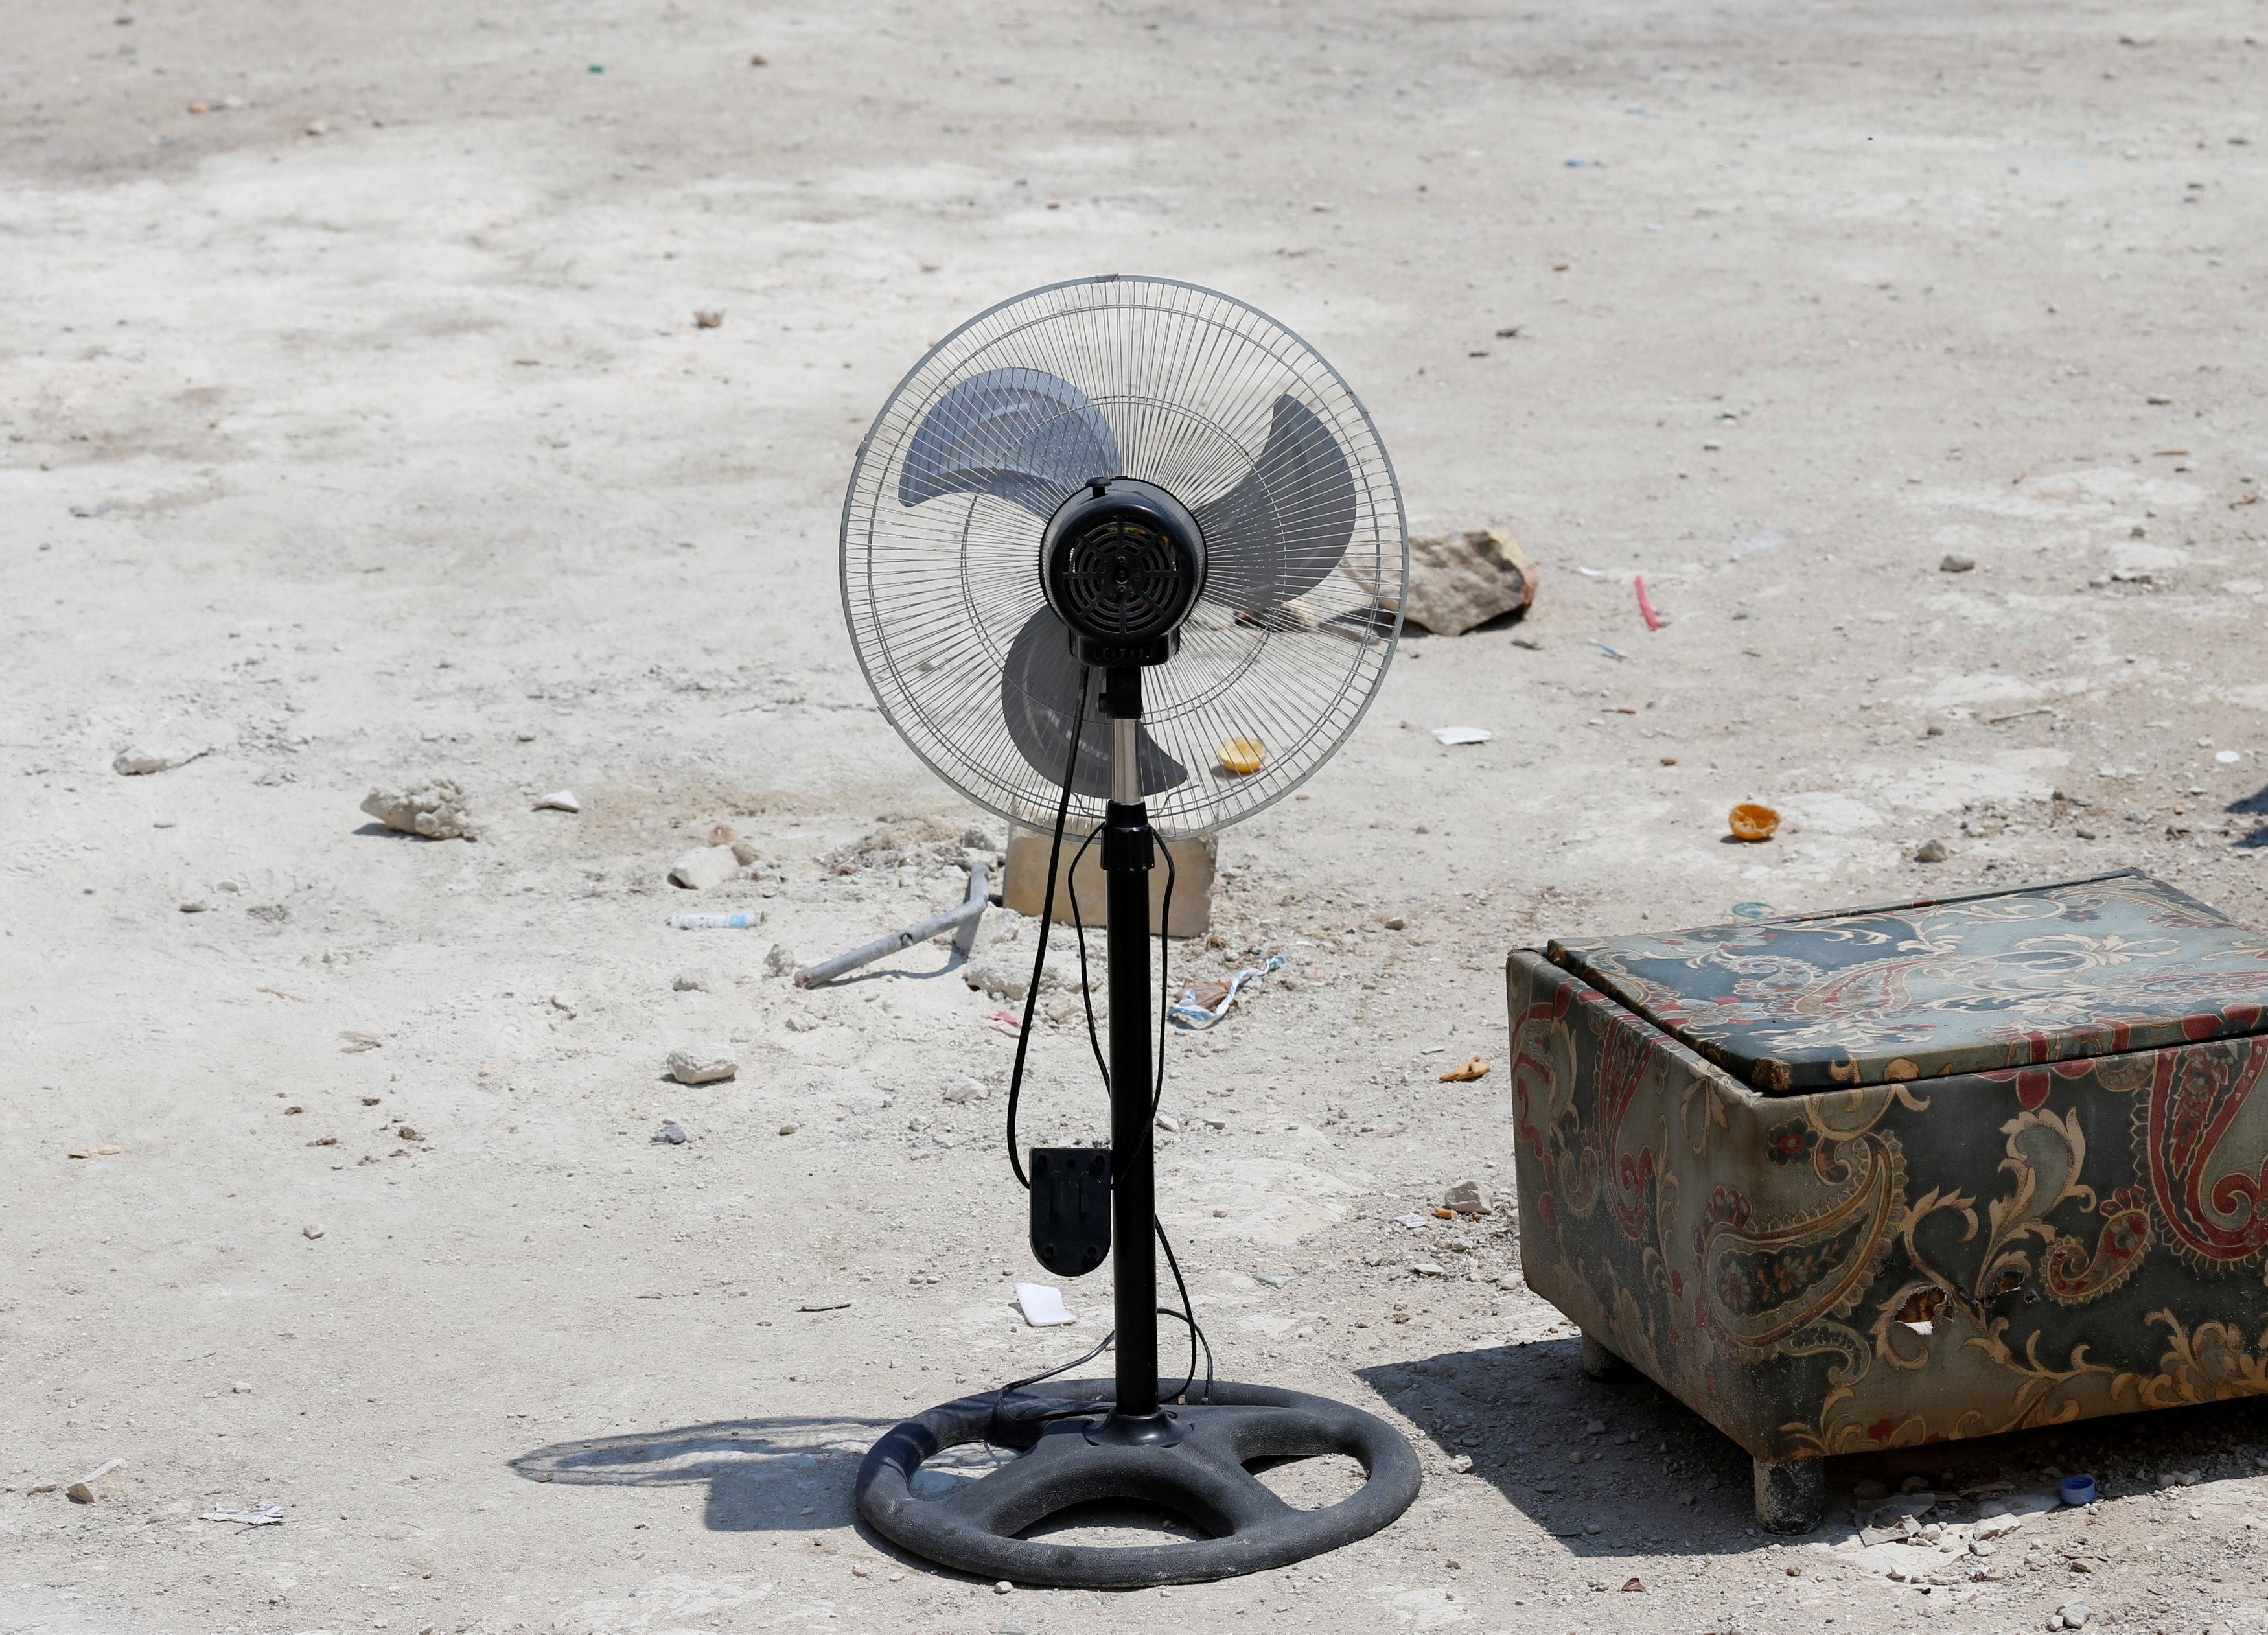 An electric fan is seen on a farm where police evicted some 110 African migrants who had been living in stalls formerly used by cows, in Qormi, Malta August 13, 2018.  Darrin Zammit Lupi